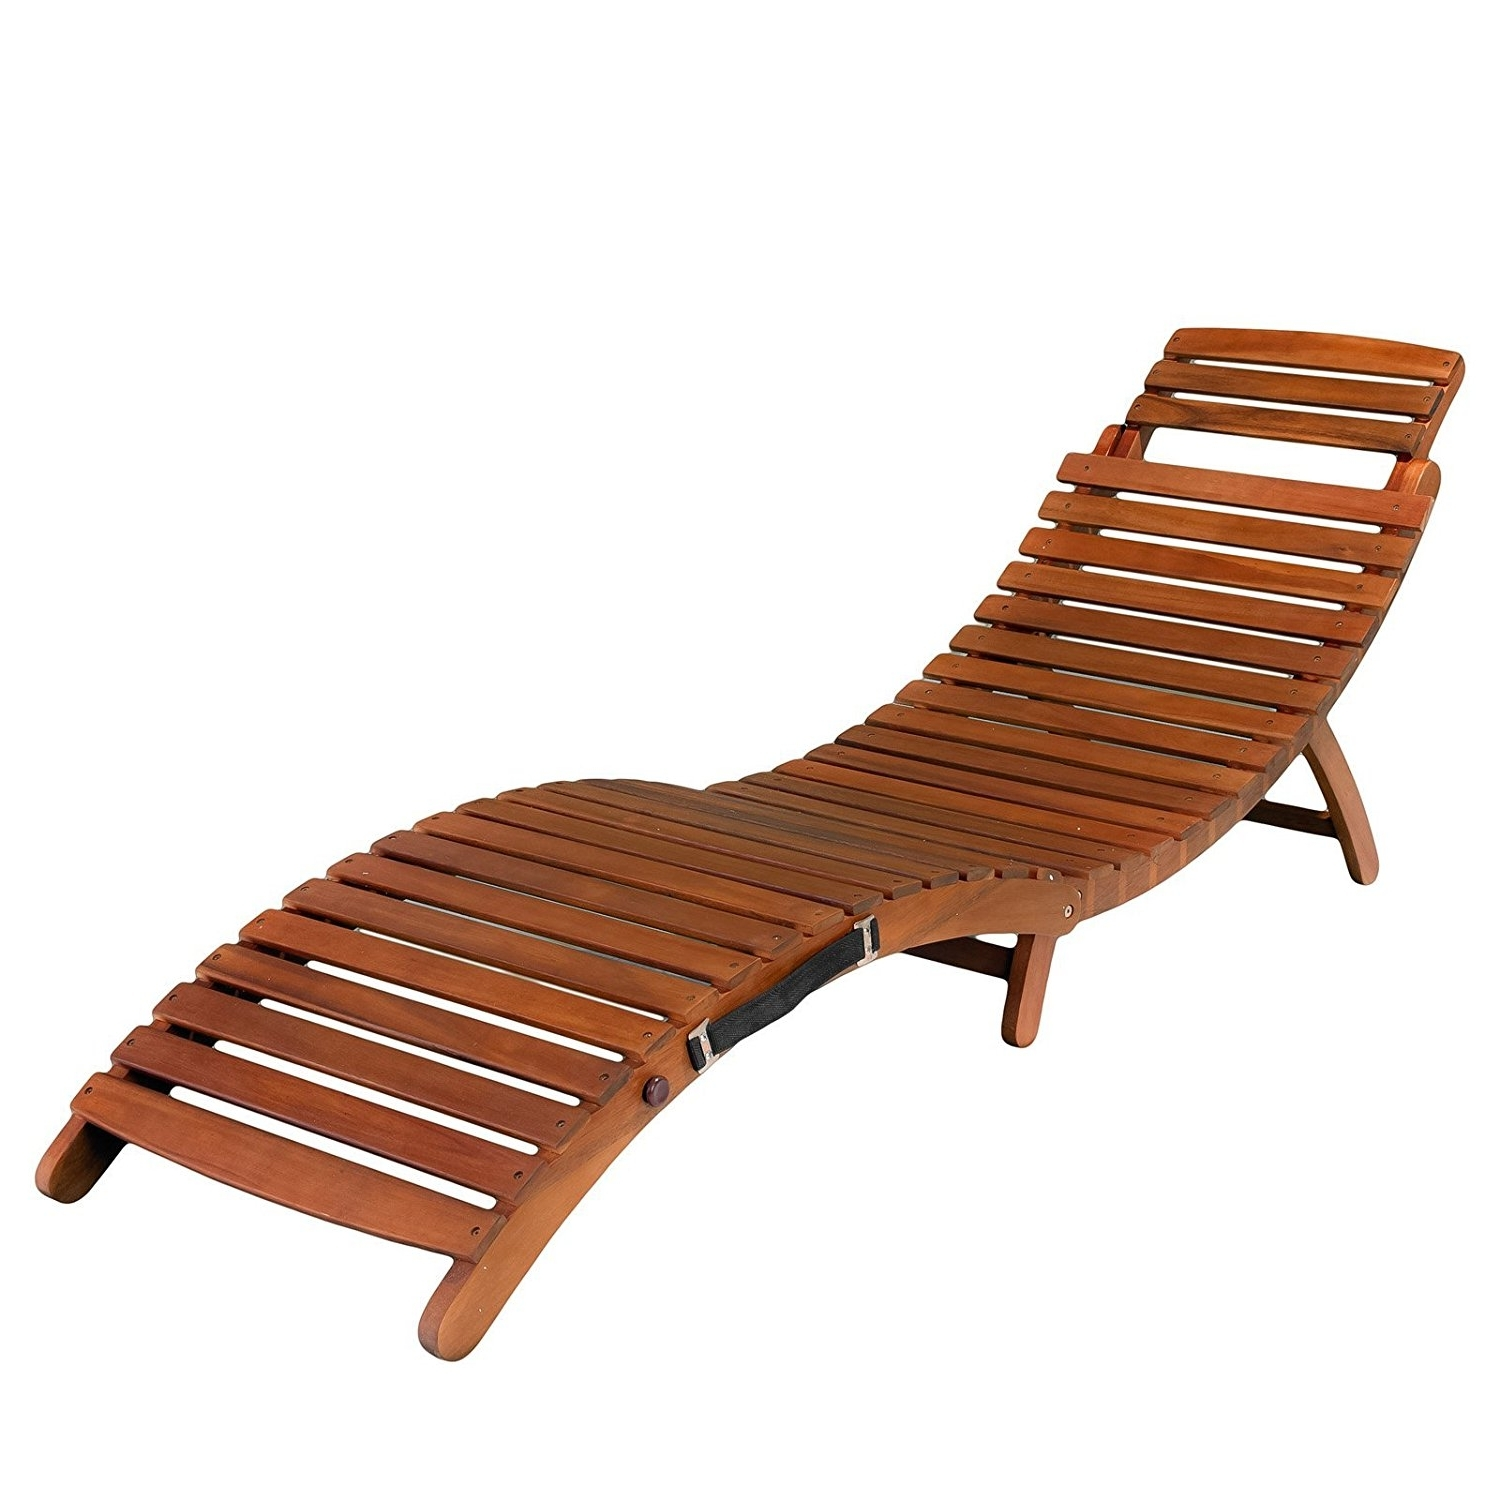 Amazon: Lahaina Outdoor Chaise Lounge: Garden & Outdoor Intended For Widely Used Pool Chaise Lounge Chairs (View 1 of 15)